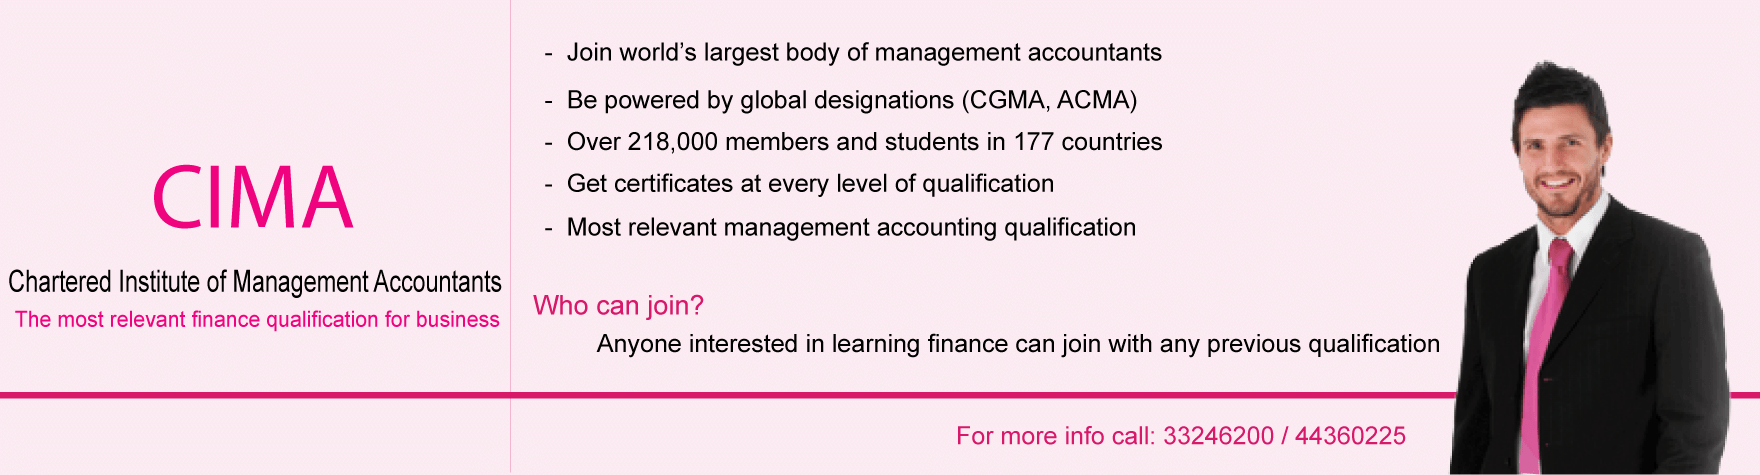 Cima Excellence Training